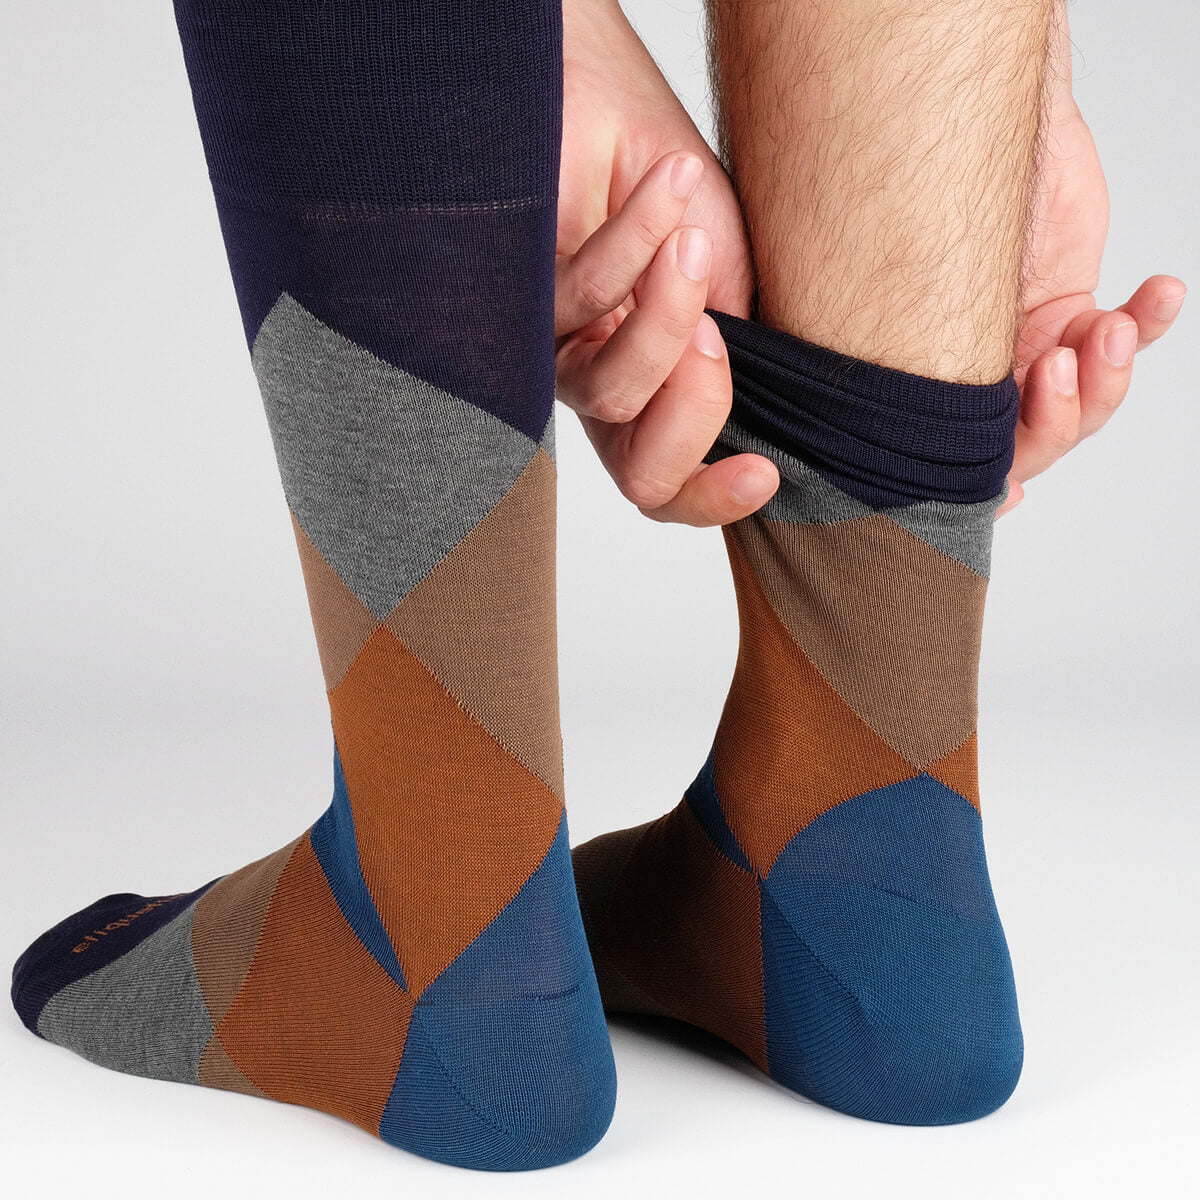 Mens Socks - Shades of Midnight Men's Socks Gift Box - Navy⎪Etiquette Clothiers